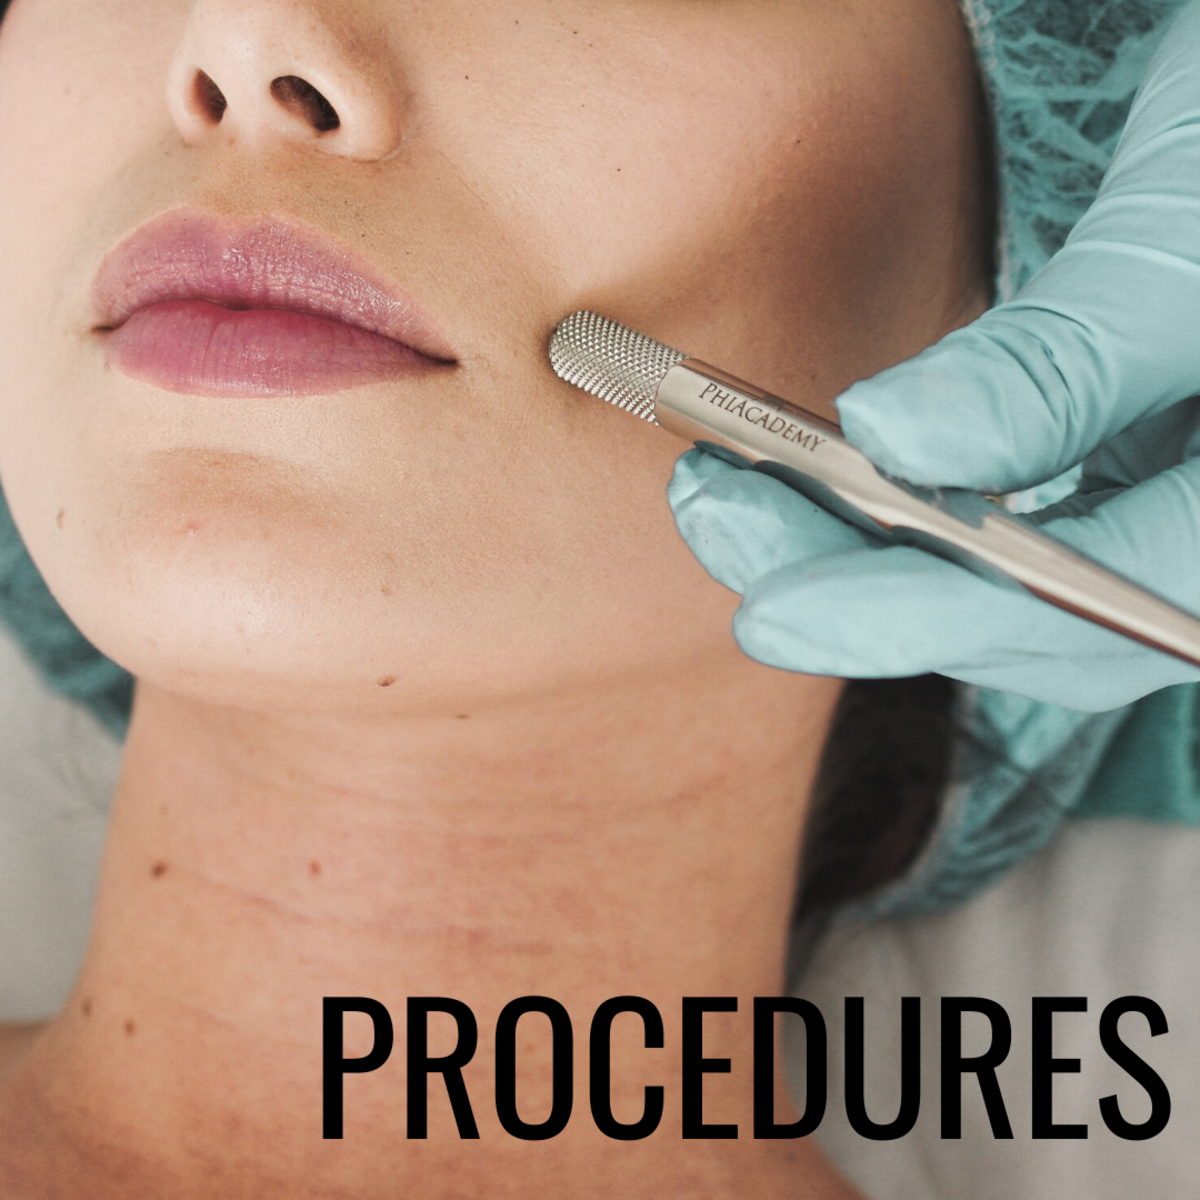 If natural remedies don't help, consider in-house procedures.